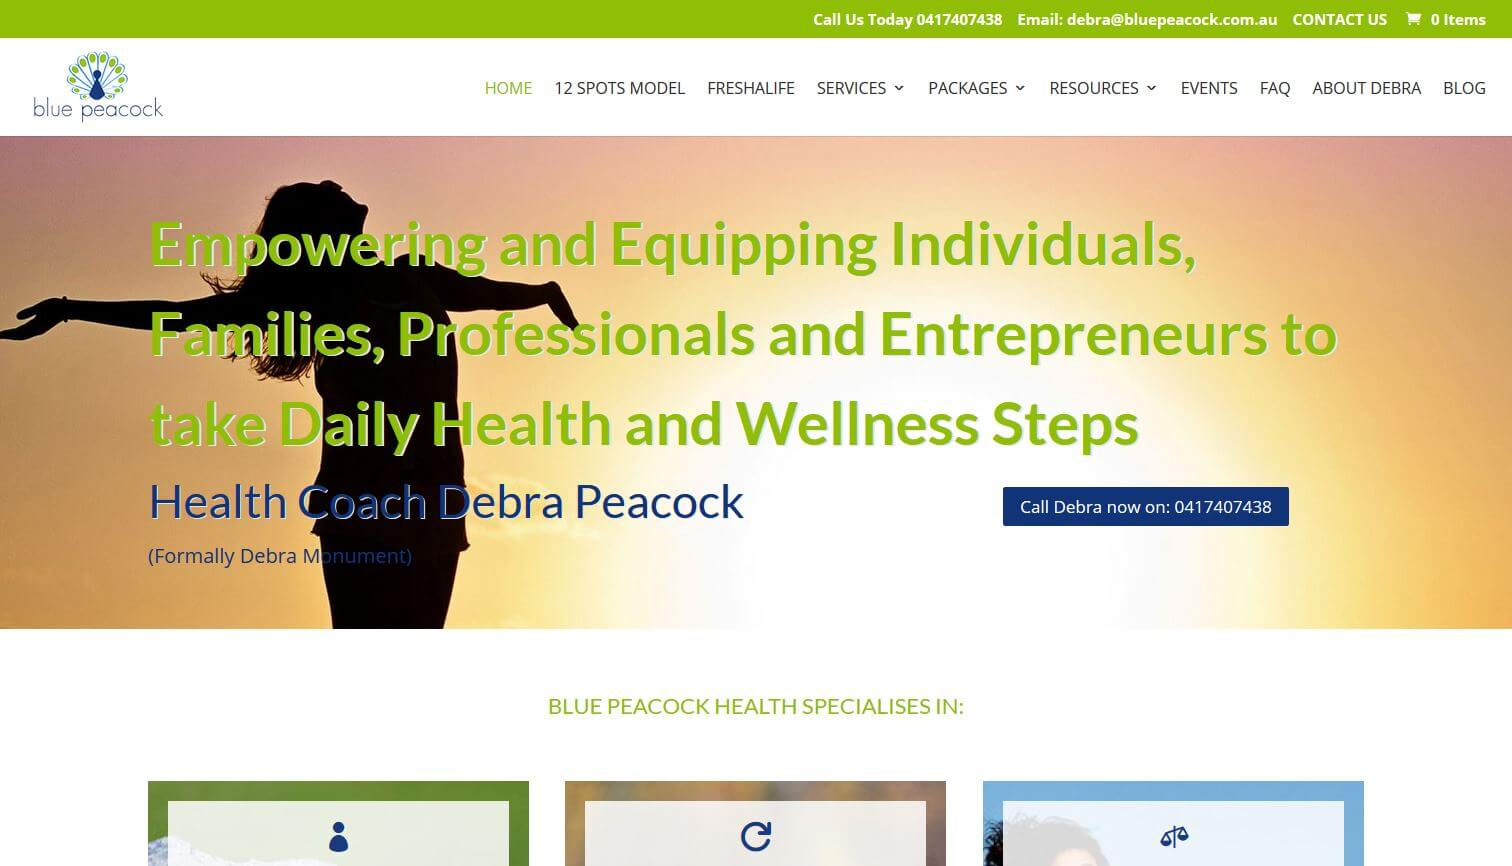 Website for Blue Peacock Health specialist